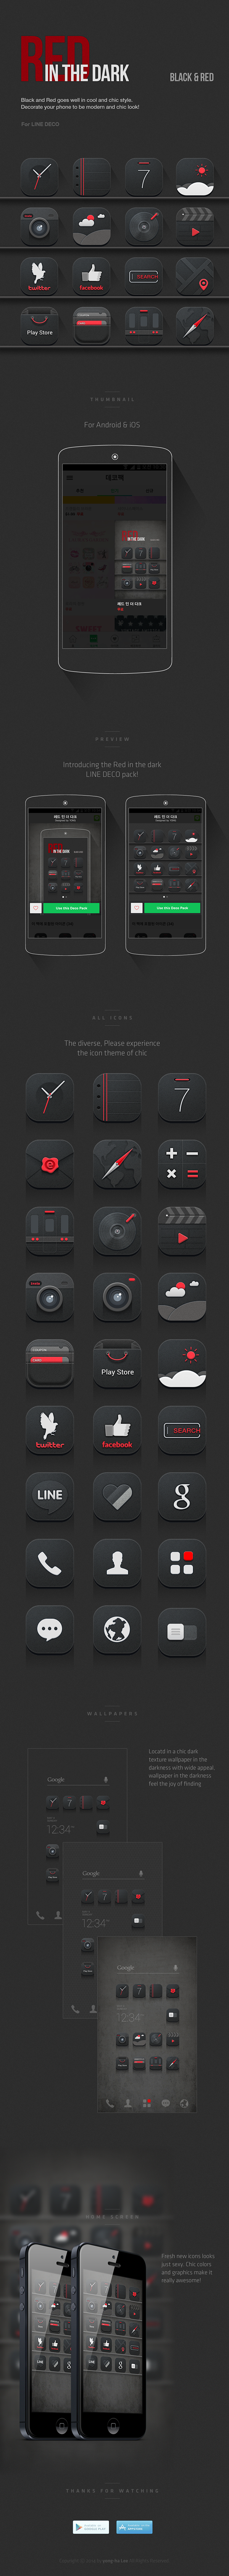 [NHN_CAMP MOBILE] Red in the dark icon set design by Lee Yong Ha, via Behance